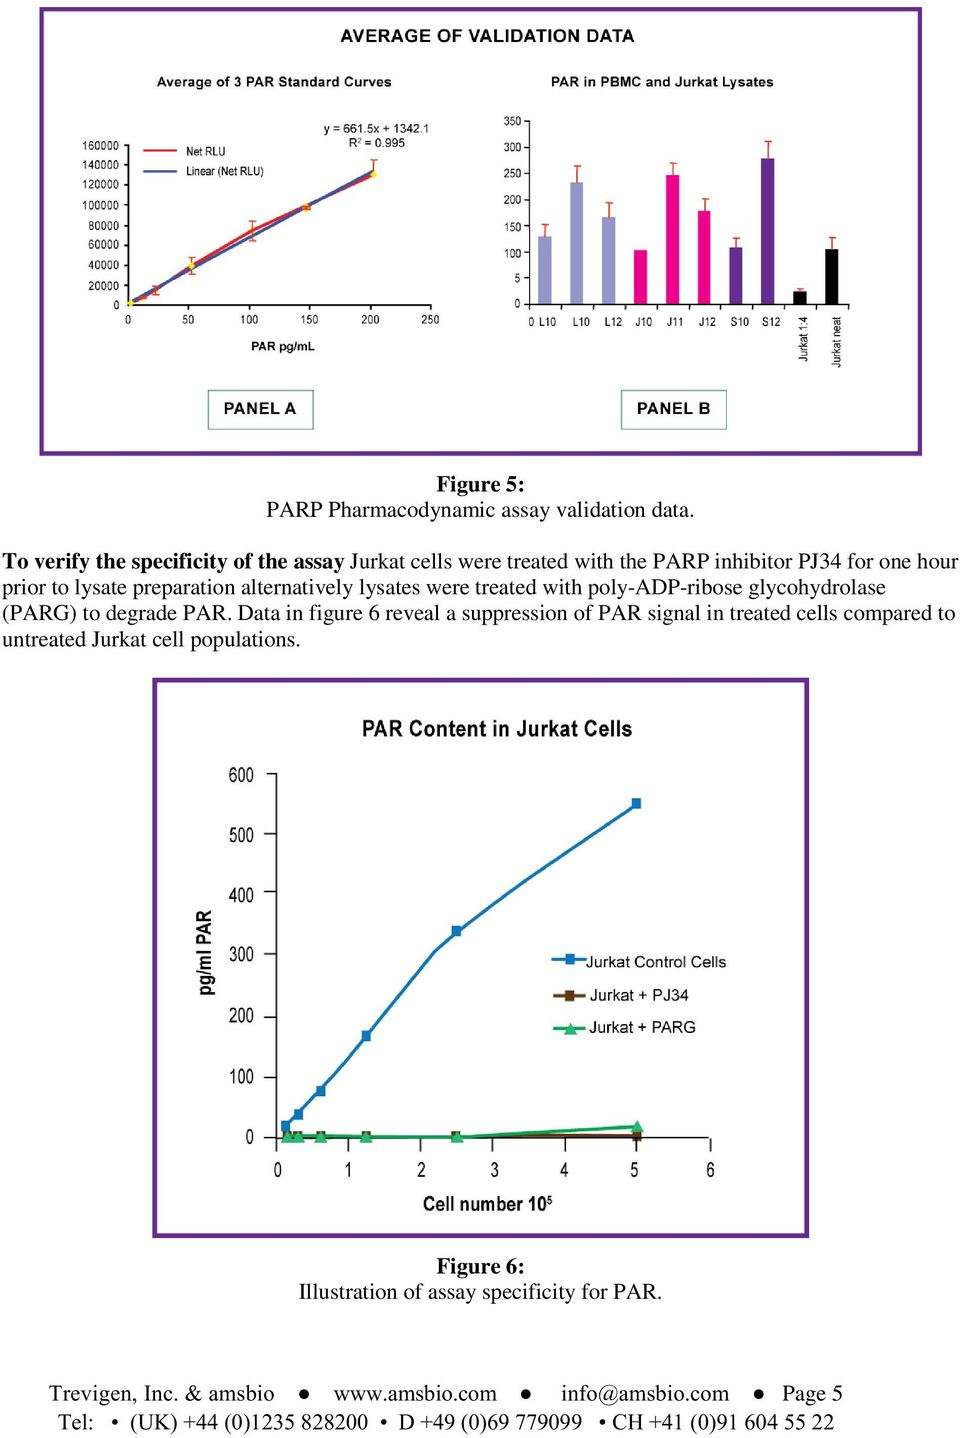 preparation alternatively lysates were treated with poly-adp-ribose glycohydrolase (PARG) to degrade PAR.